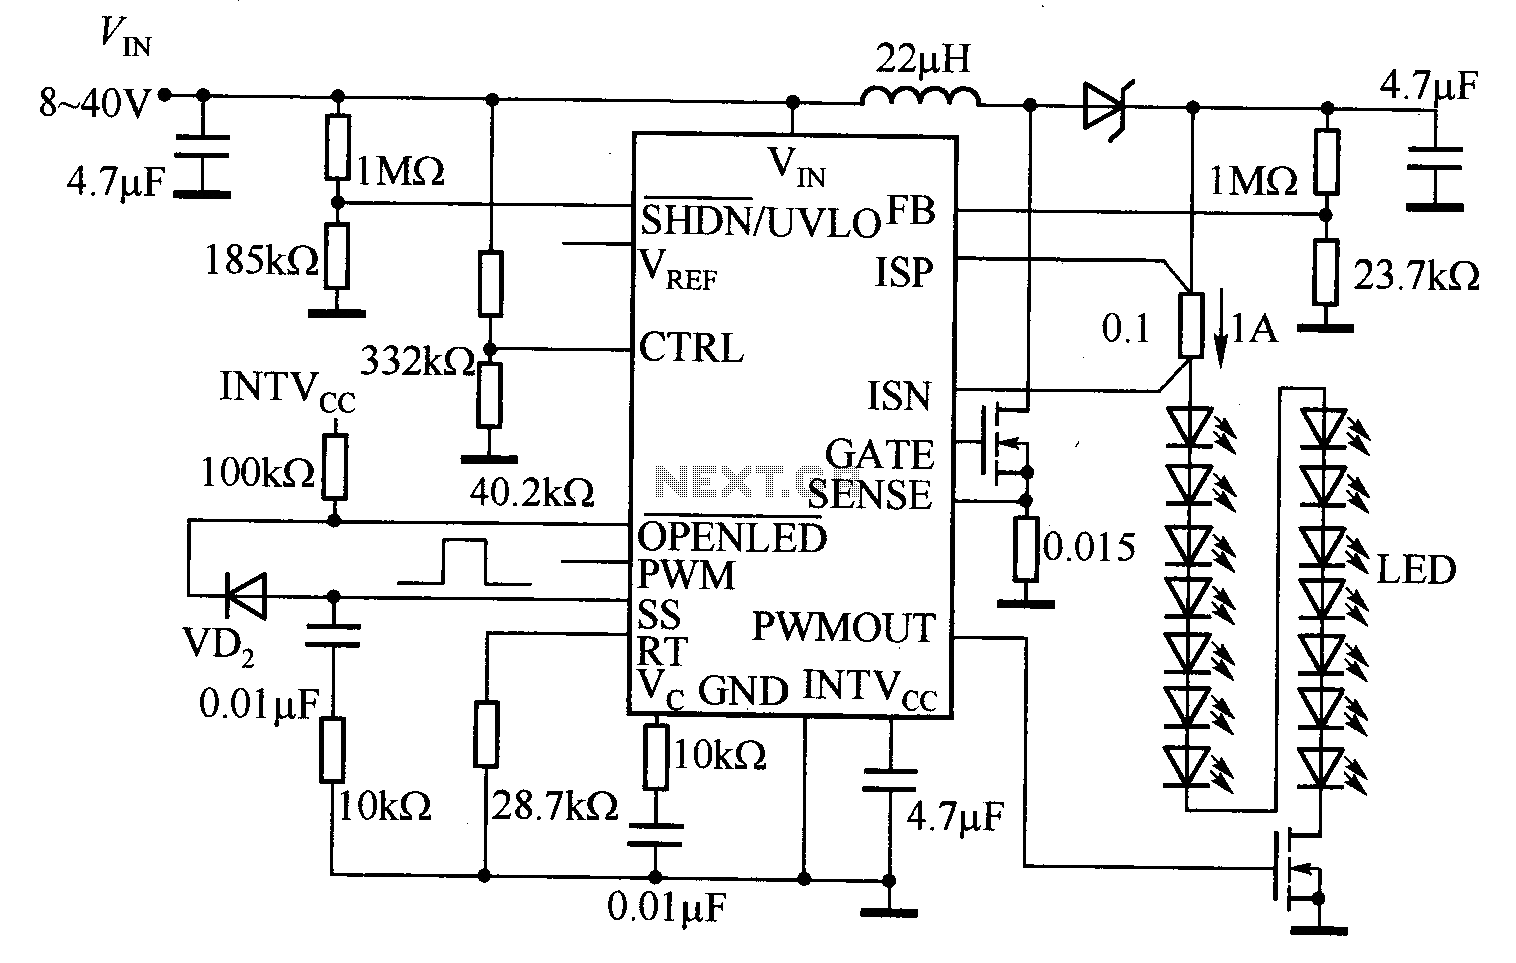 Led Circuit Page 2 Light Laser Circuits Repo Projects 5 555and4017ledchasercircuit Images 4017png Based On The Lt3755 50w White Headlight Drive Diagram